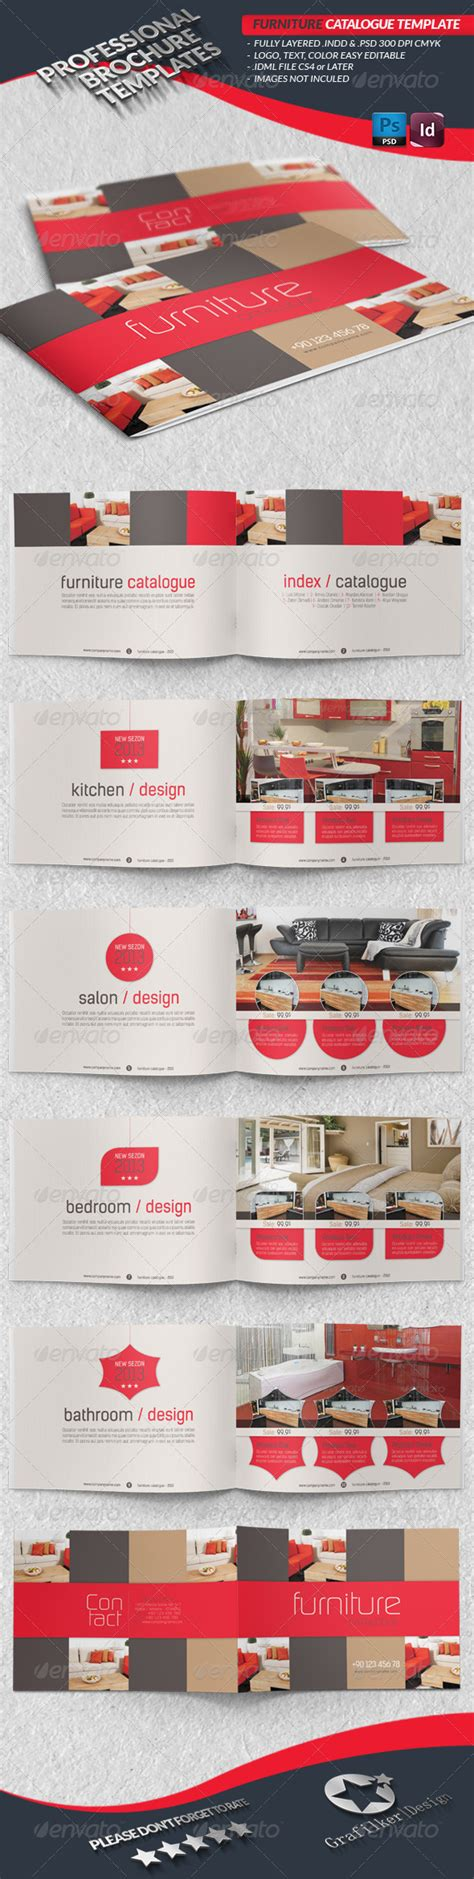 catalog layout pinterest furniture catalogue template graphicriver